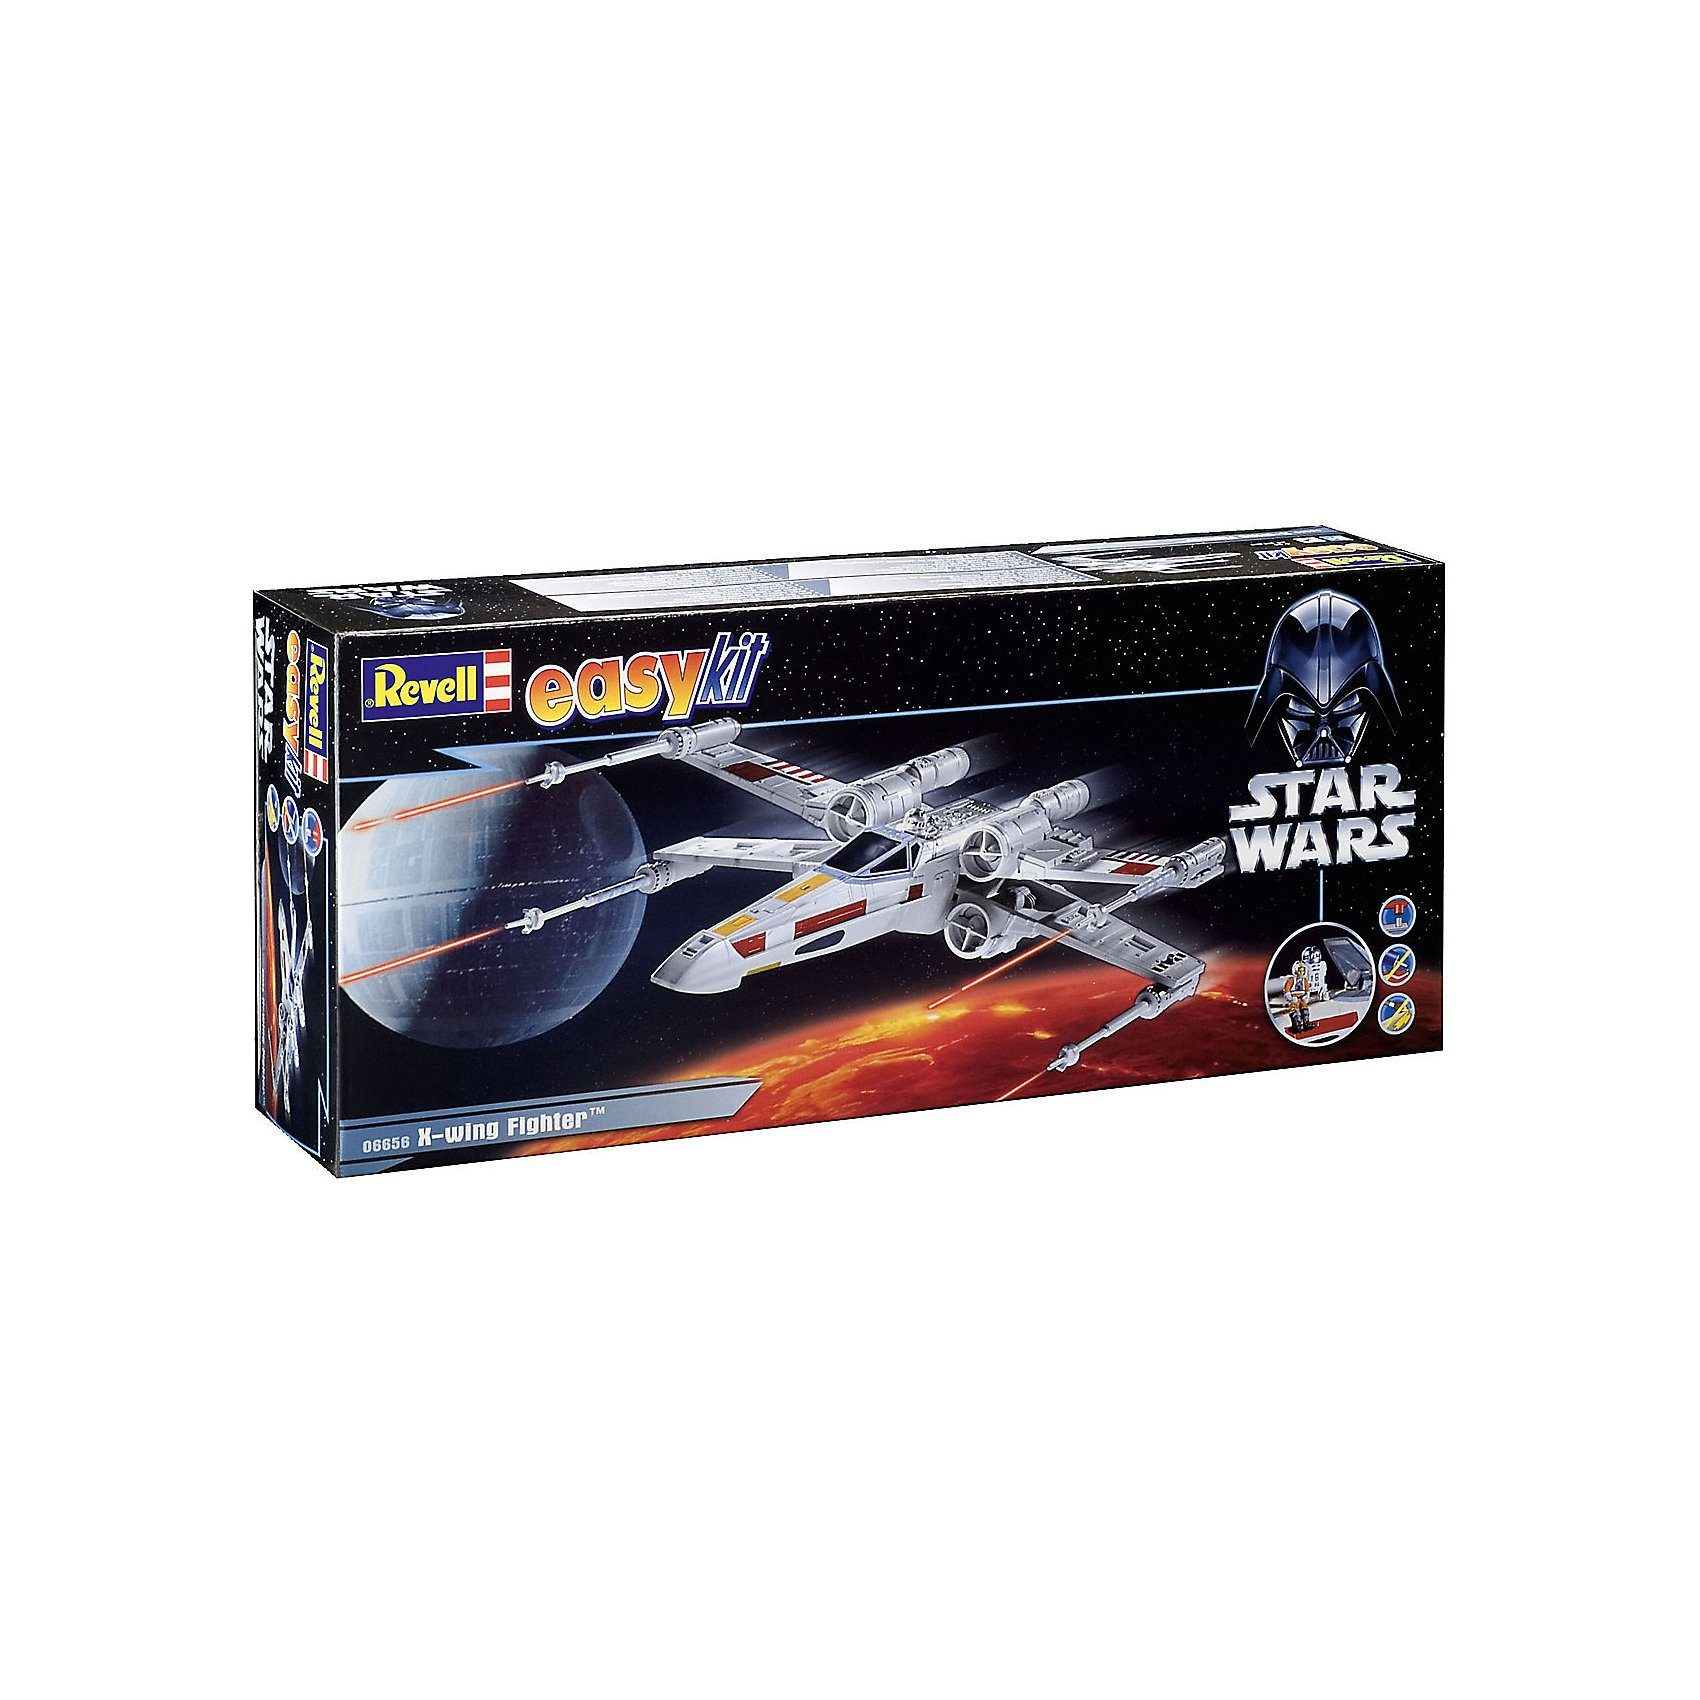 "Revell Modellbausatz ""easykit"" Star Wars: X-wing Fighter (Luke Skyw"